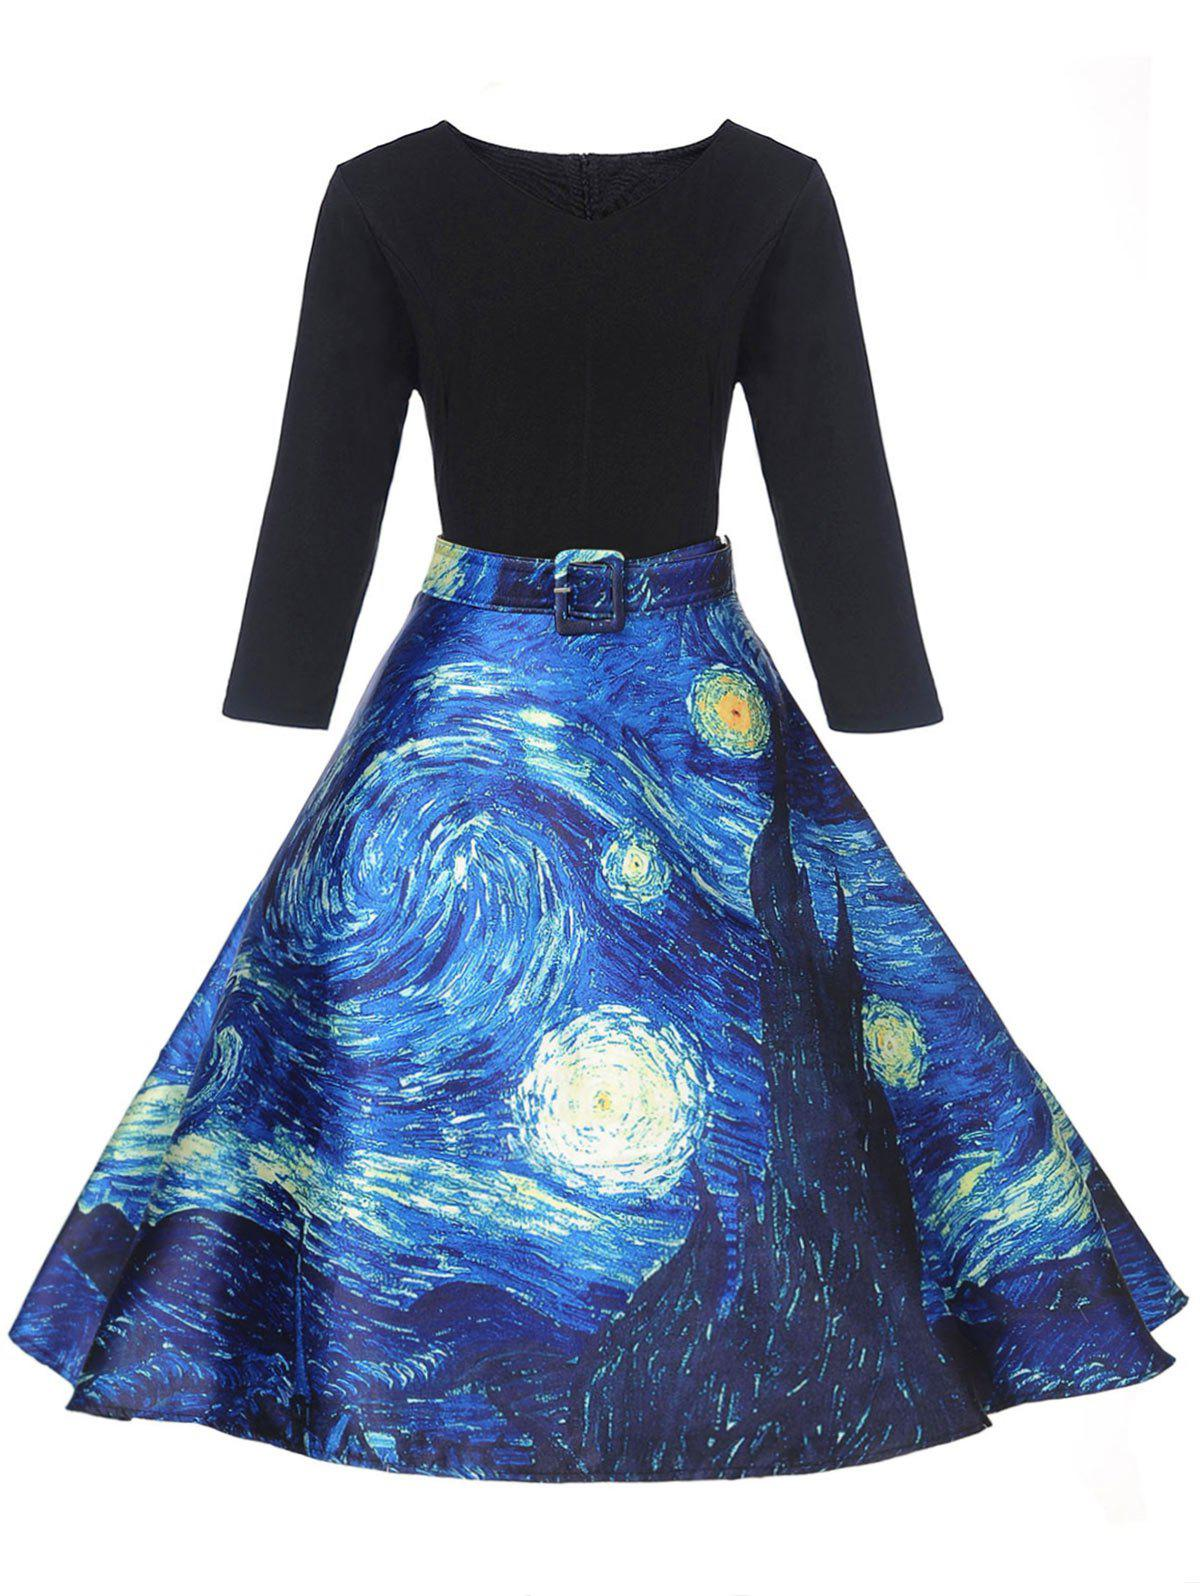 Hot Vintage Starry Sky Print Fit and Flare Dress